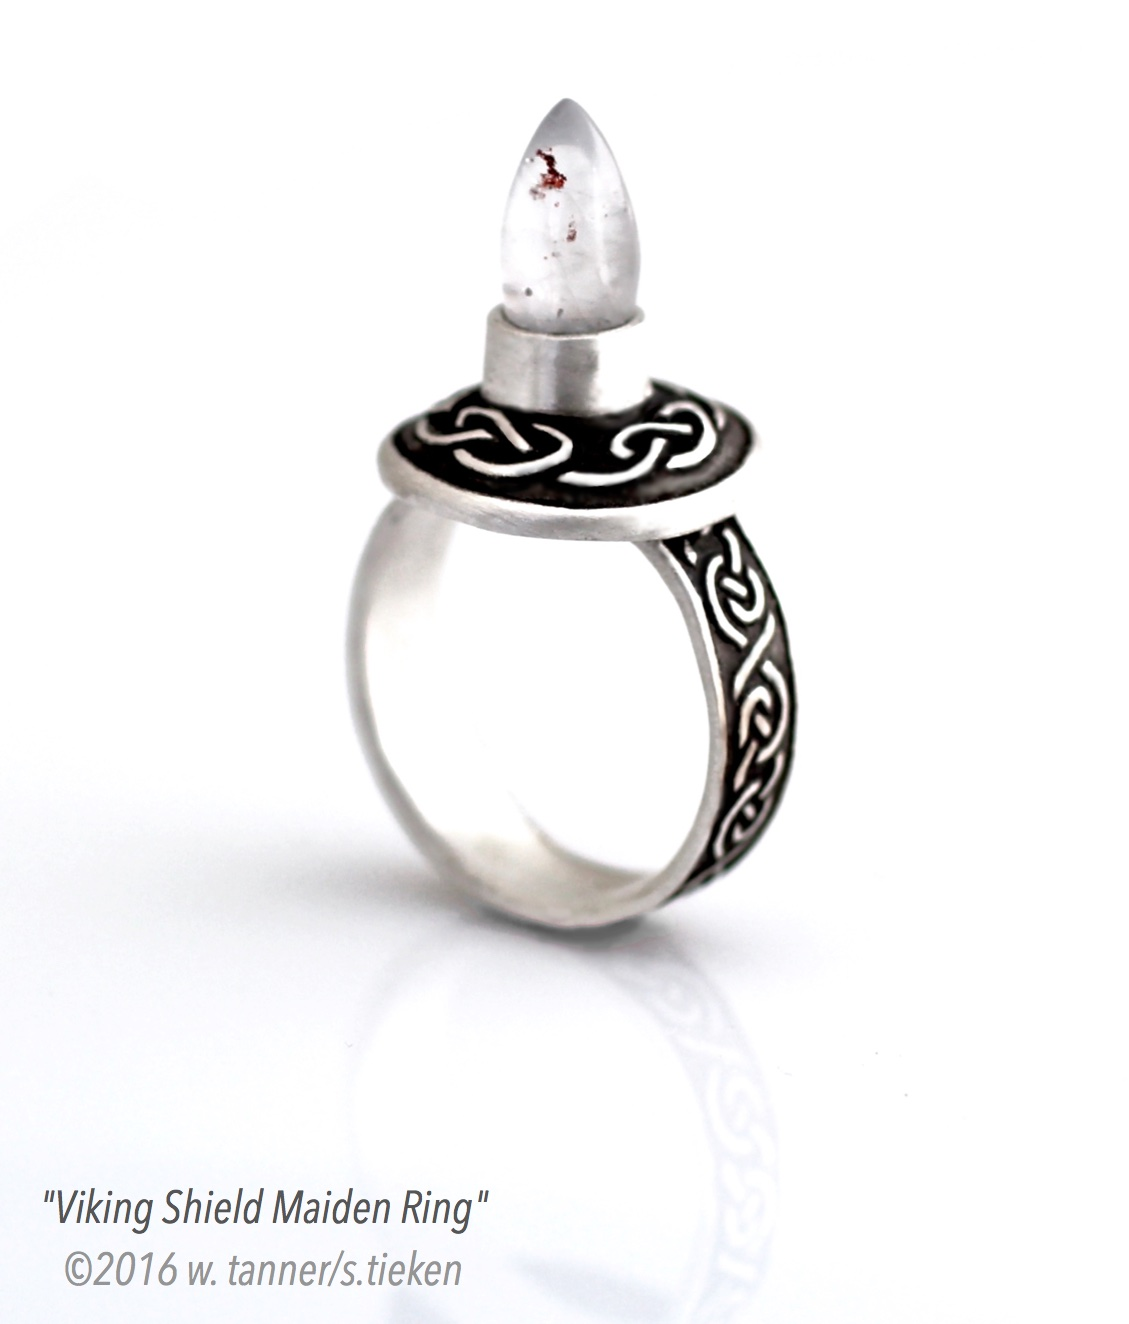 Ring Design Ideas the Viking Shield Maiden Ring Design Idea Ii